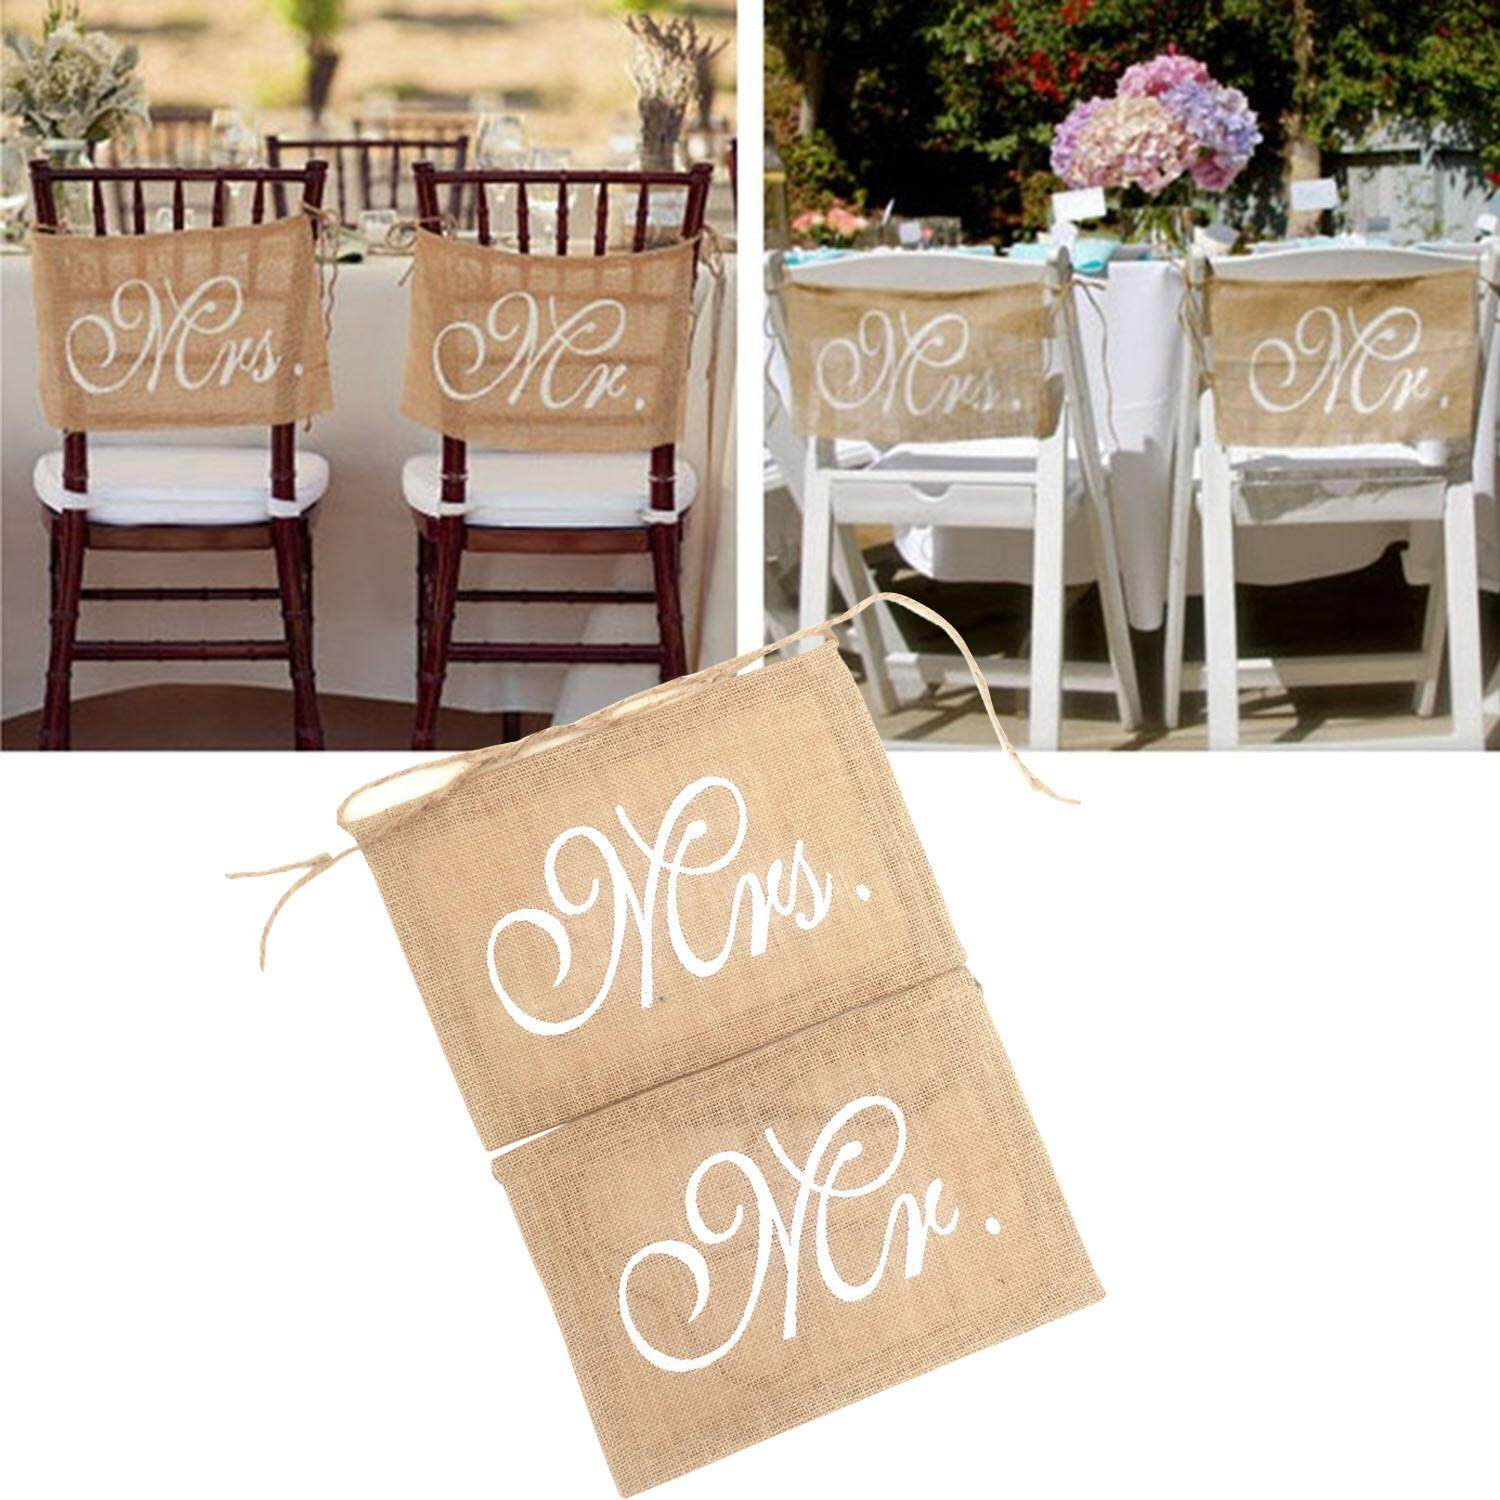 Buy sell cheapest retro rustic theme best quality product deals 1 pair mr and mrs vintage burlap chair banner chair sign garland rustic theme junglespirit Image collections